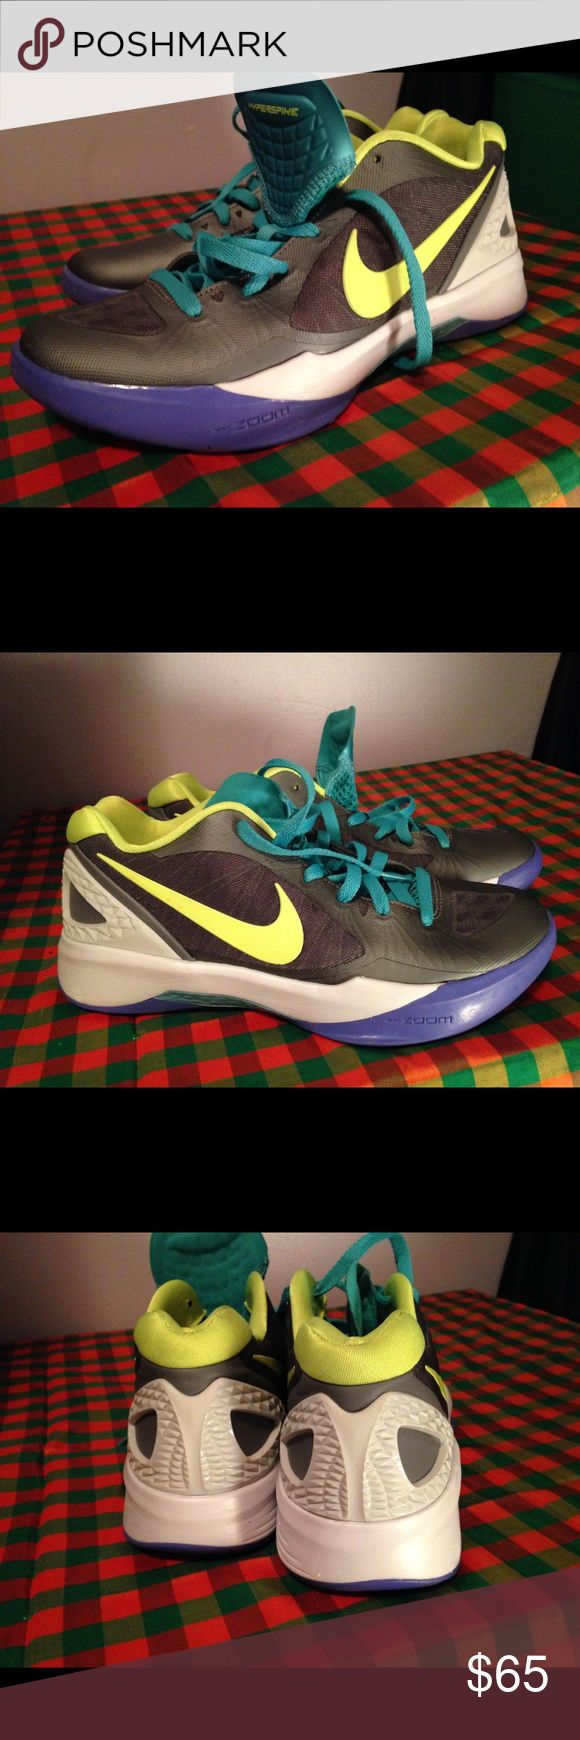 Women's volley Zoom hyper spike sneaker Women's volley ball zoom hyperspike sneaker for women's Nike NO BOX INCLUDE SORRY IN ADVANCE Nike Shoes Athletic Shoes